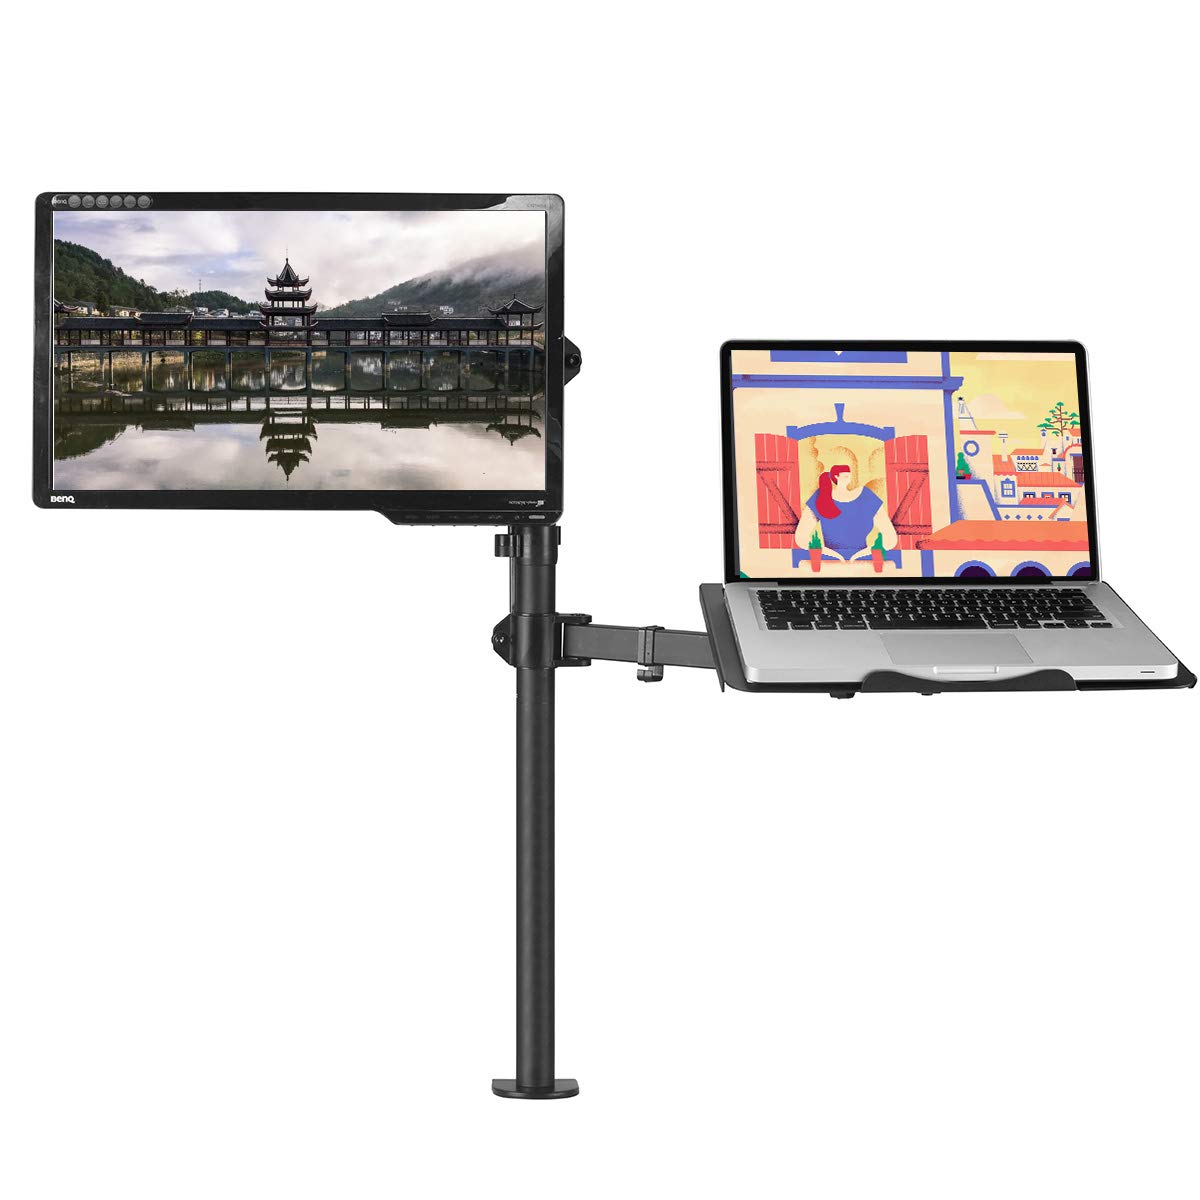 Suptek Full Motion Computer Monitor and Laptop Riser Desk Mount, Height Adjustable (800mm), Fits 13-27'' Screen and up to 17'' Notebooks, VESA 75/100, up to 22lbs for Each (MD6832TP004)